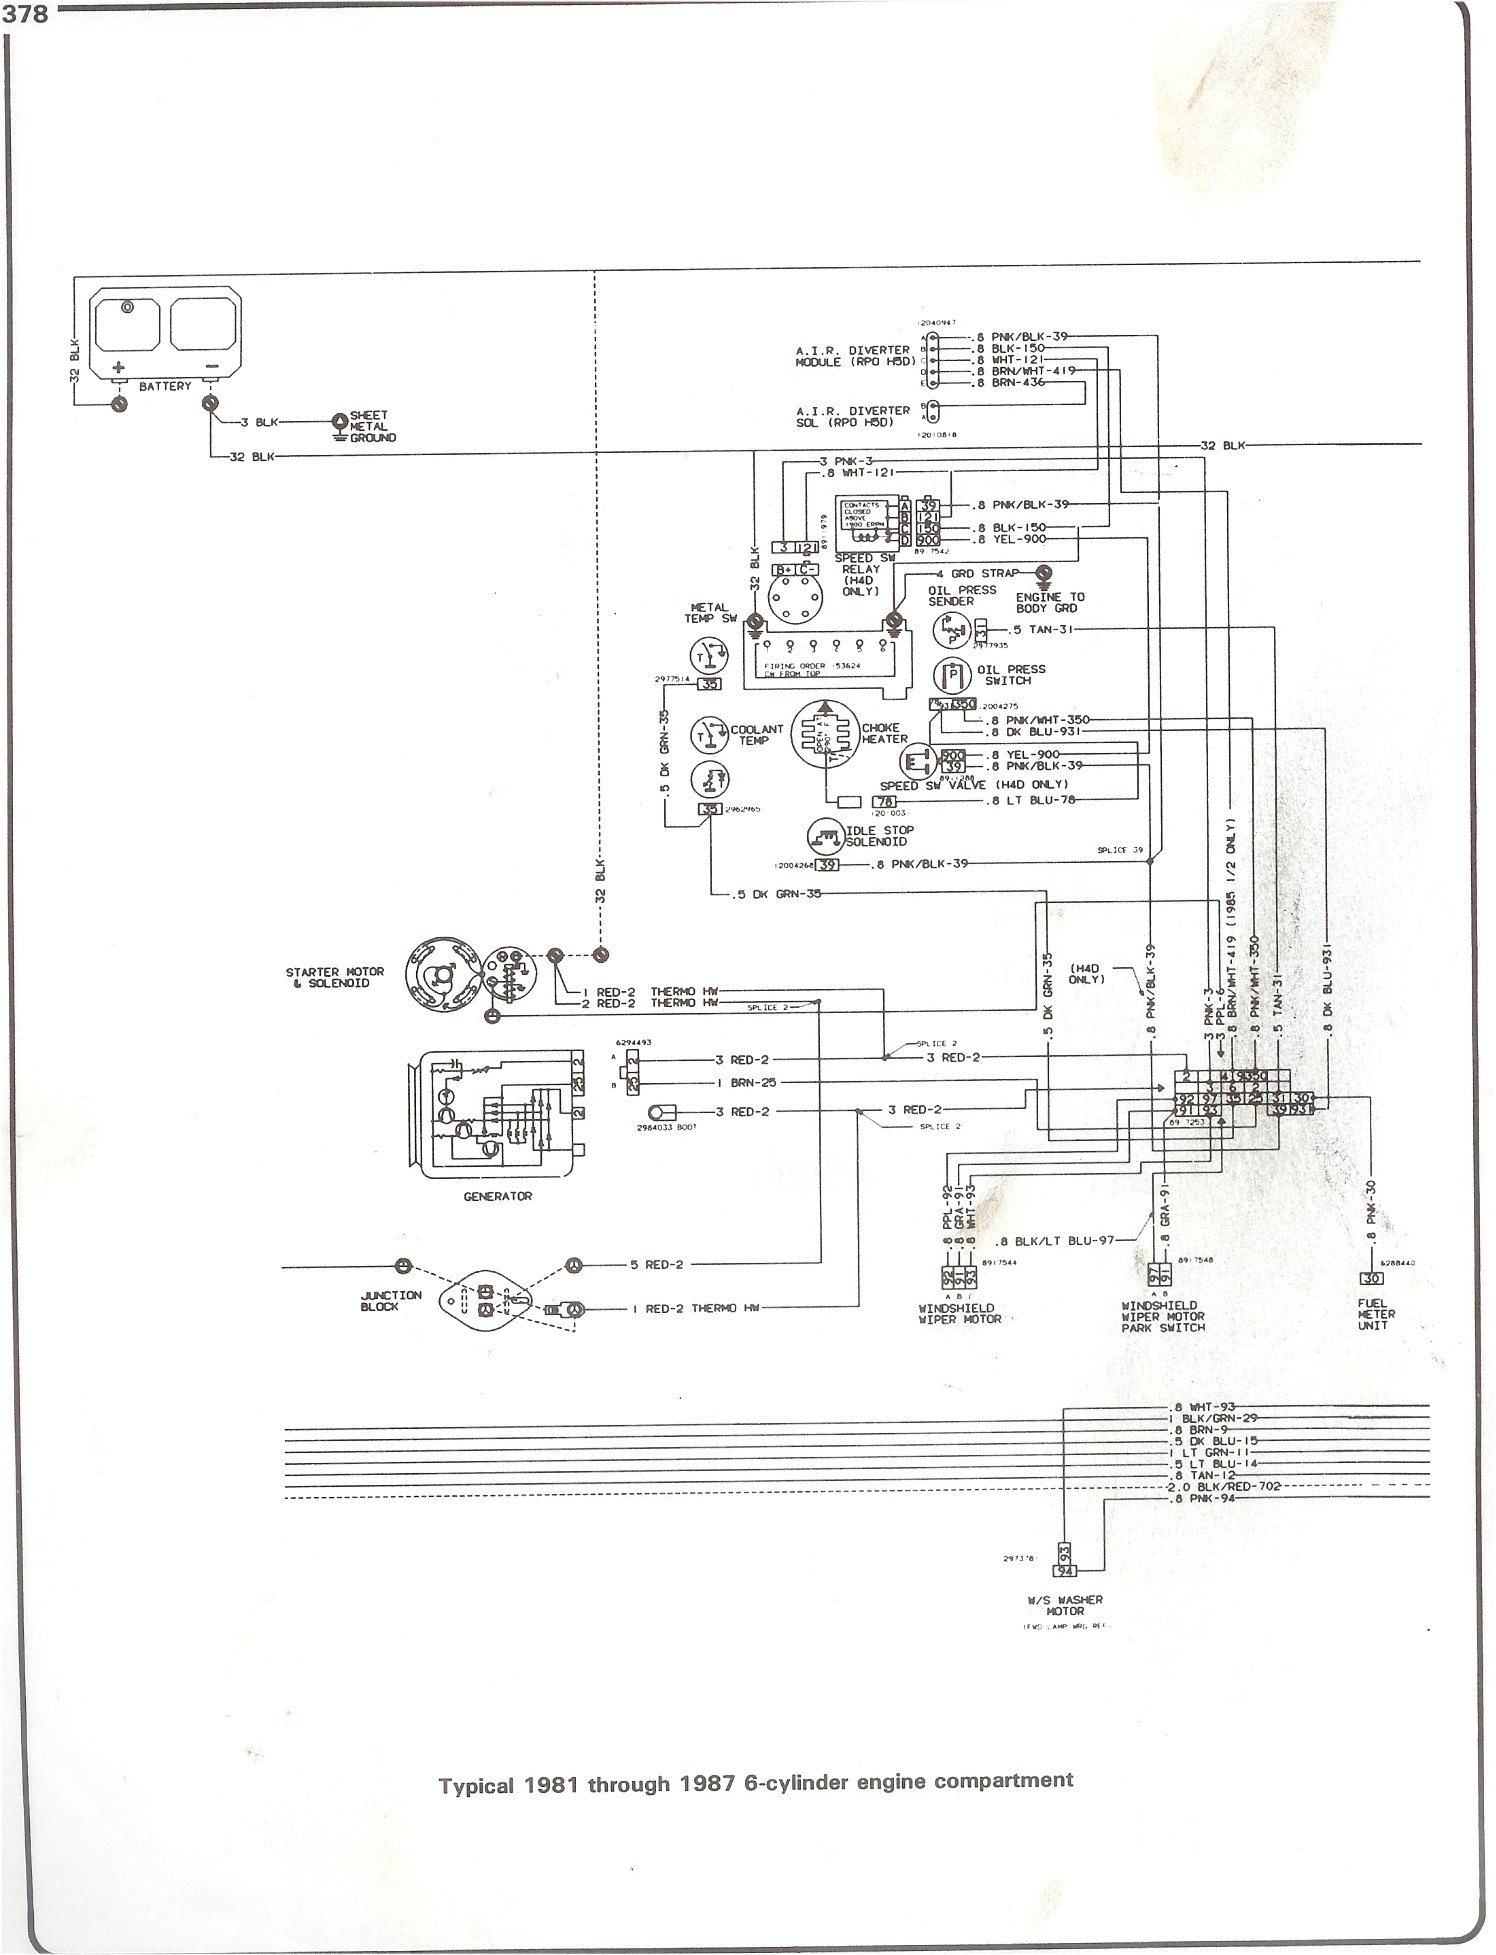 Wiring Diagram For A Ford F600 30 Foot Boom Truck